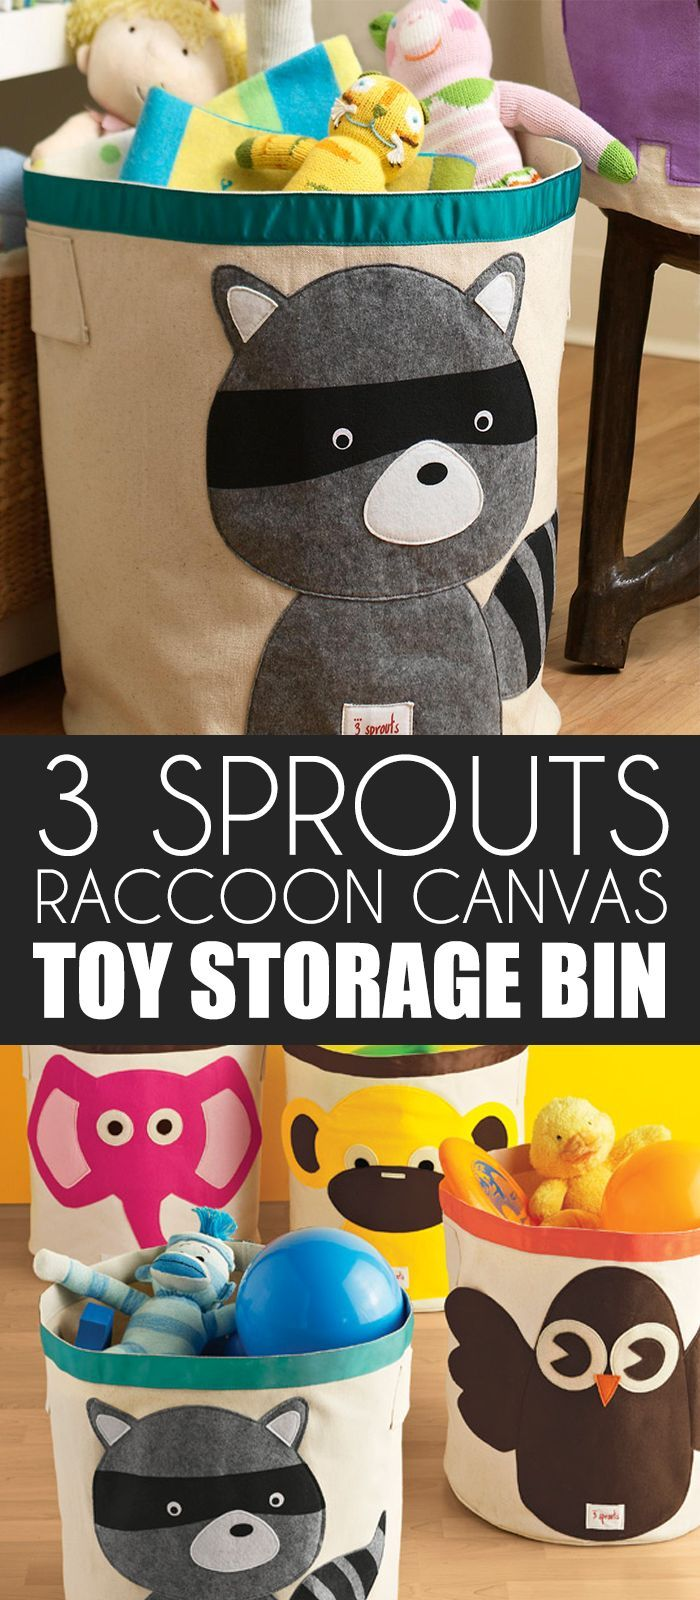 Raccoon Canvas Bin By 3 Sprouts Prevents A Child S Room From Turning Into A Zoo Use It To Stow Stuffed Animals Puzzles Toys Or Laundry It S Easy To Carry Fr